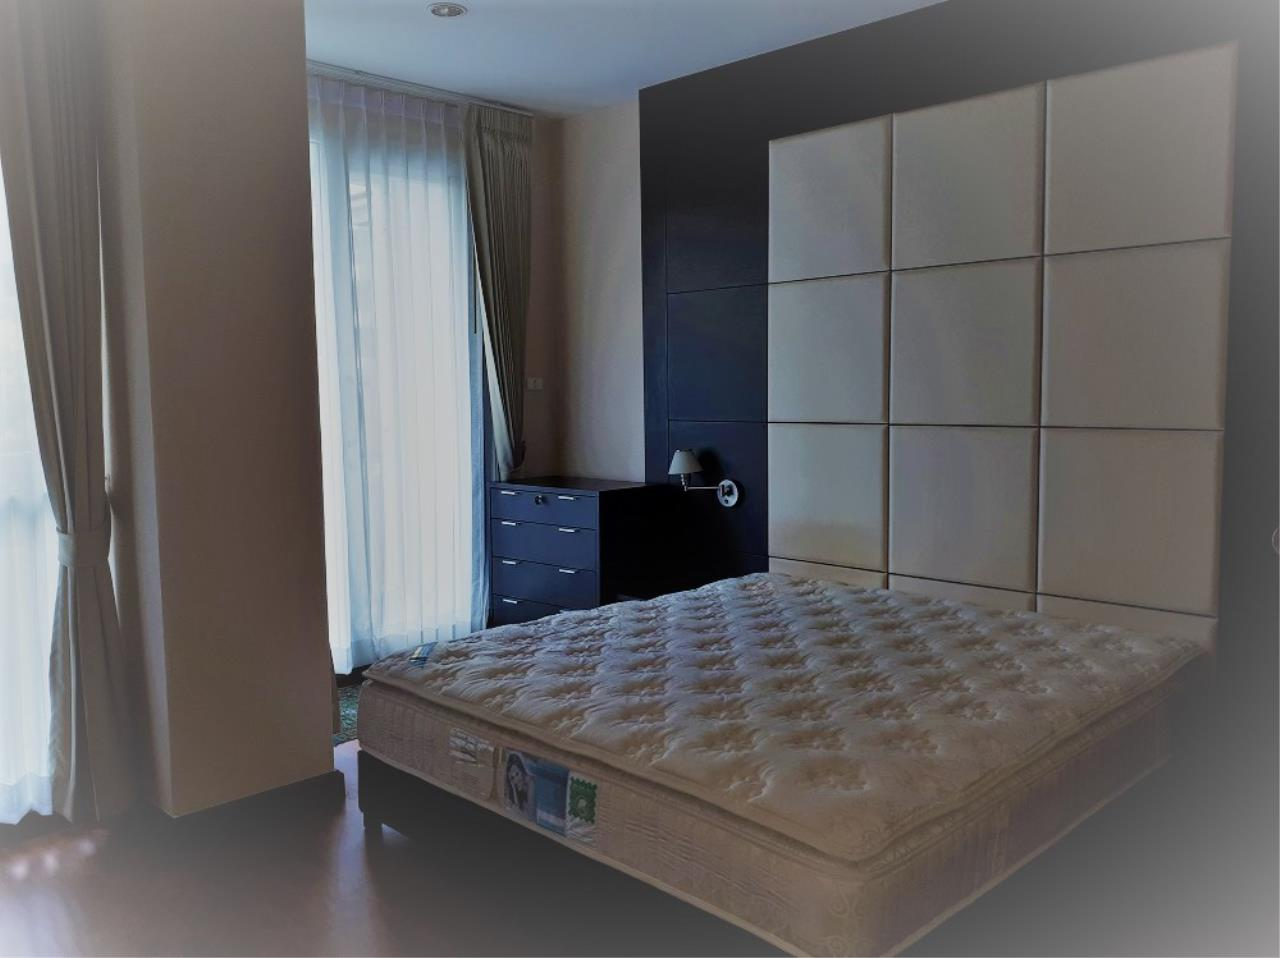 RE/MAX CondoDee Agency's Spacious 3 Bedrooms Condo @ Sukhumvit 11 11